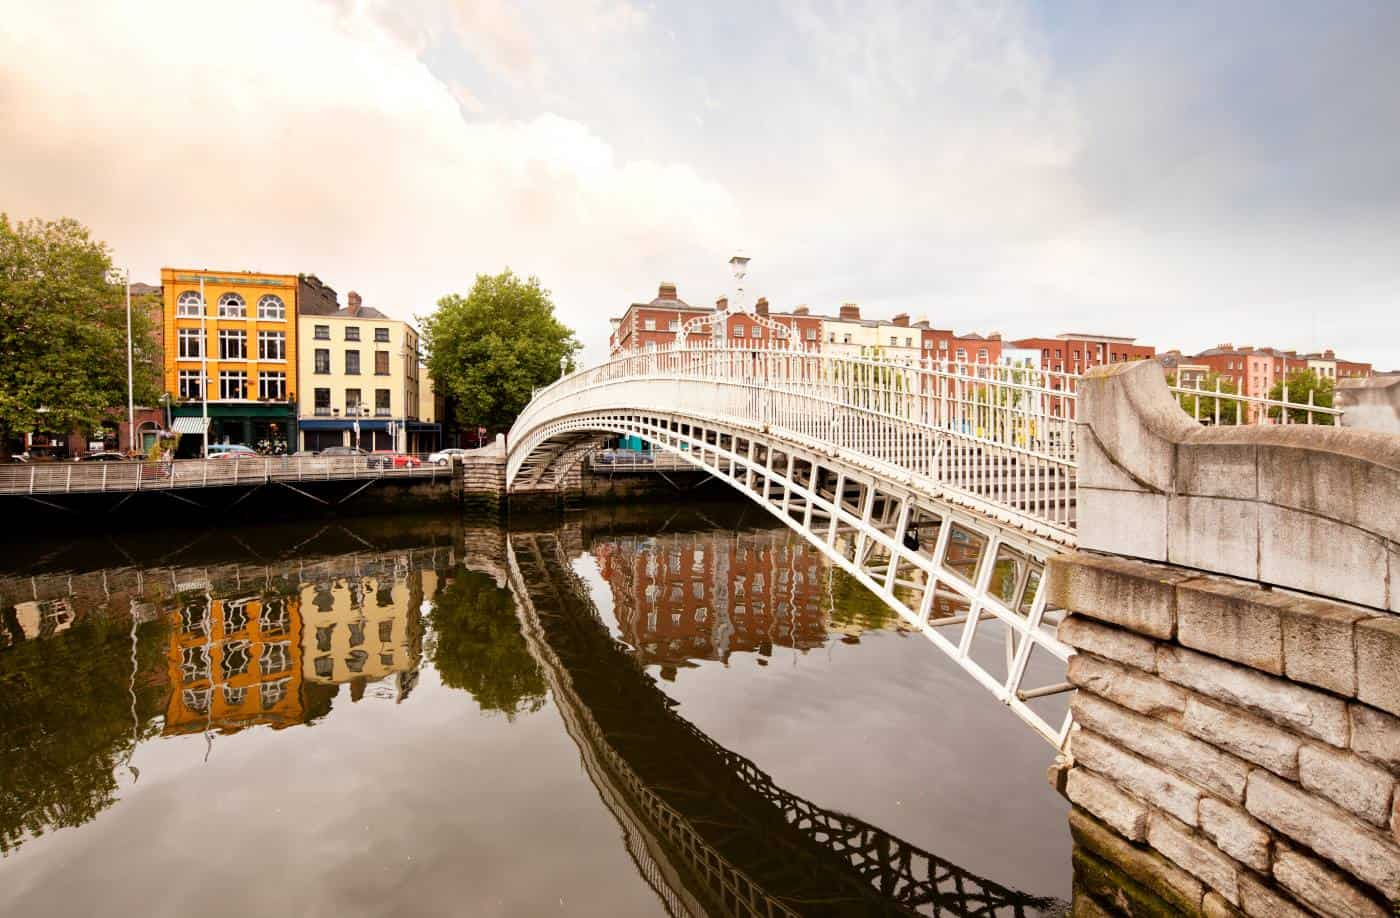 Cross the Ha'penny Bridge to the Winding Stair Bookshop